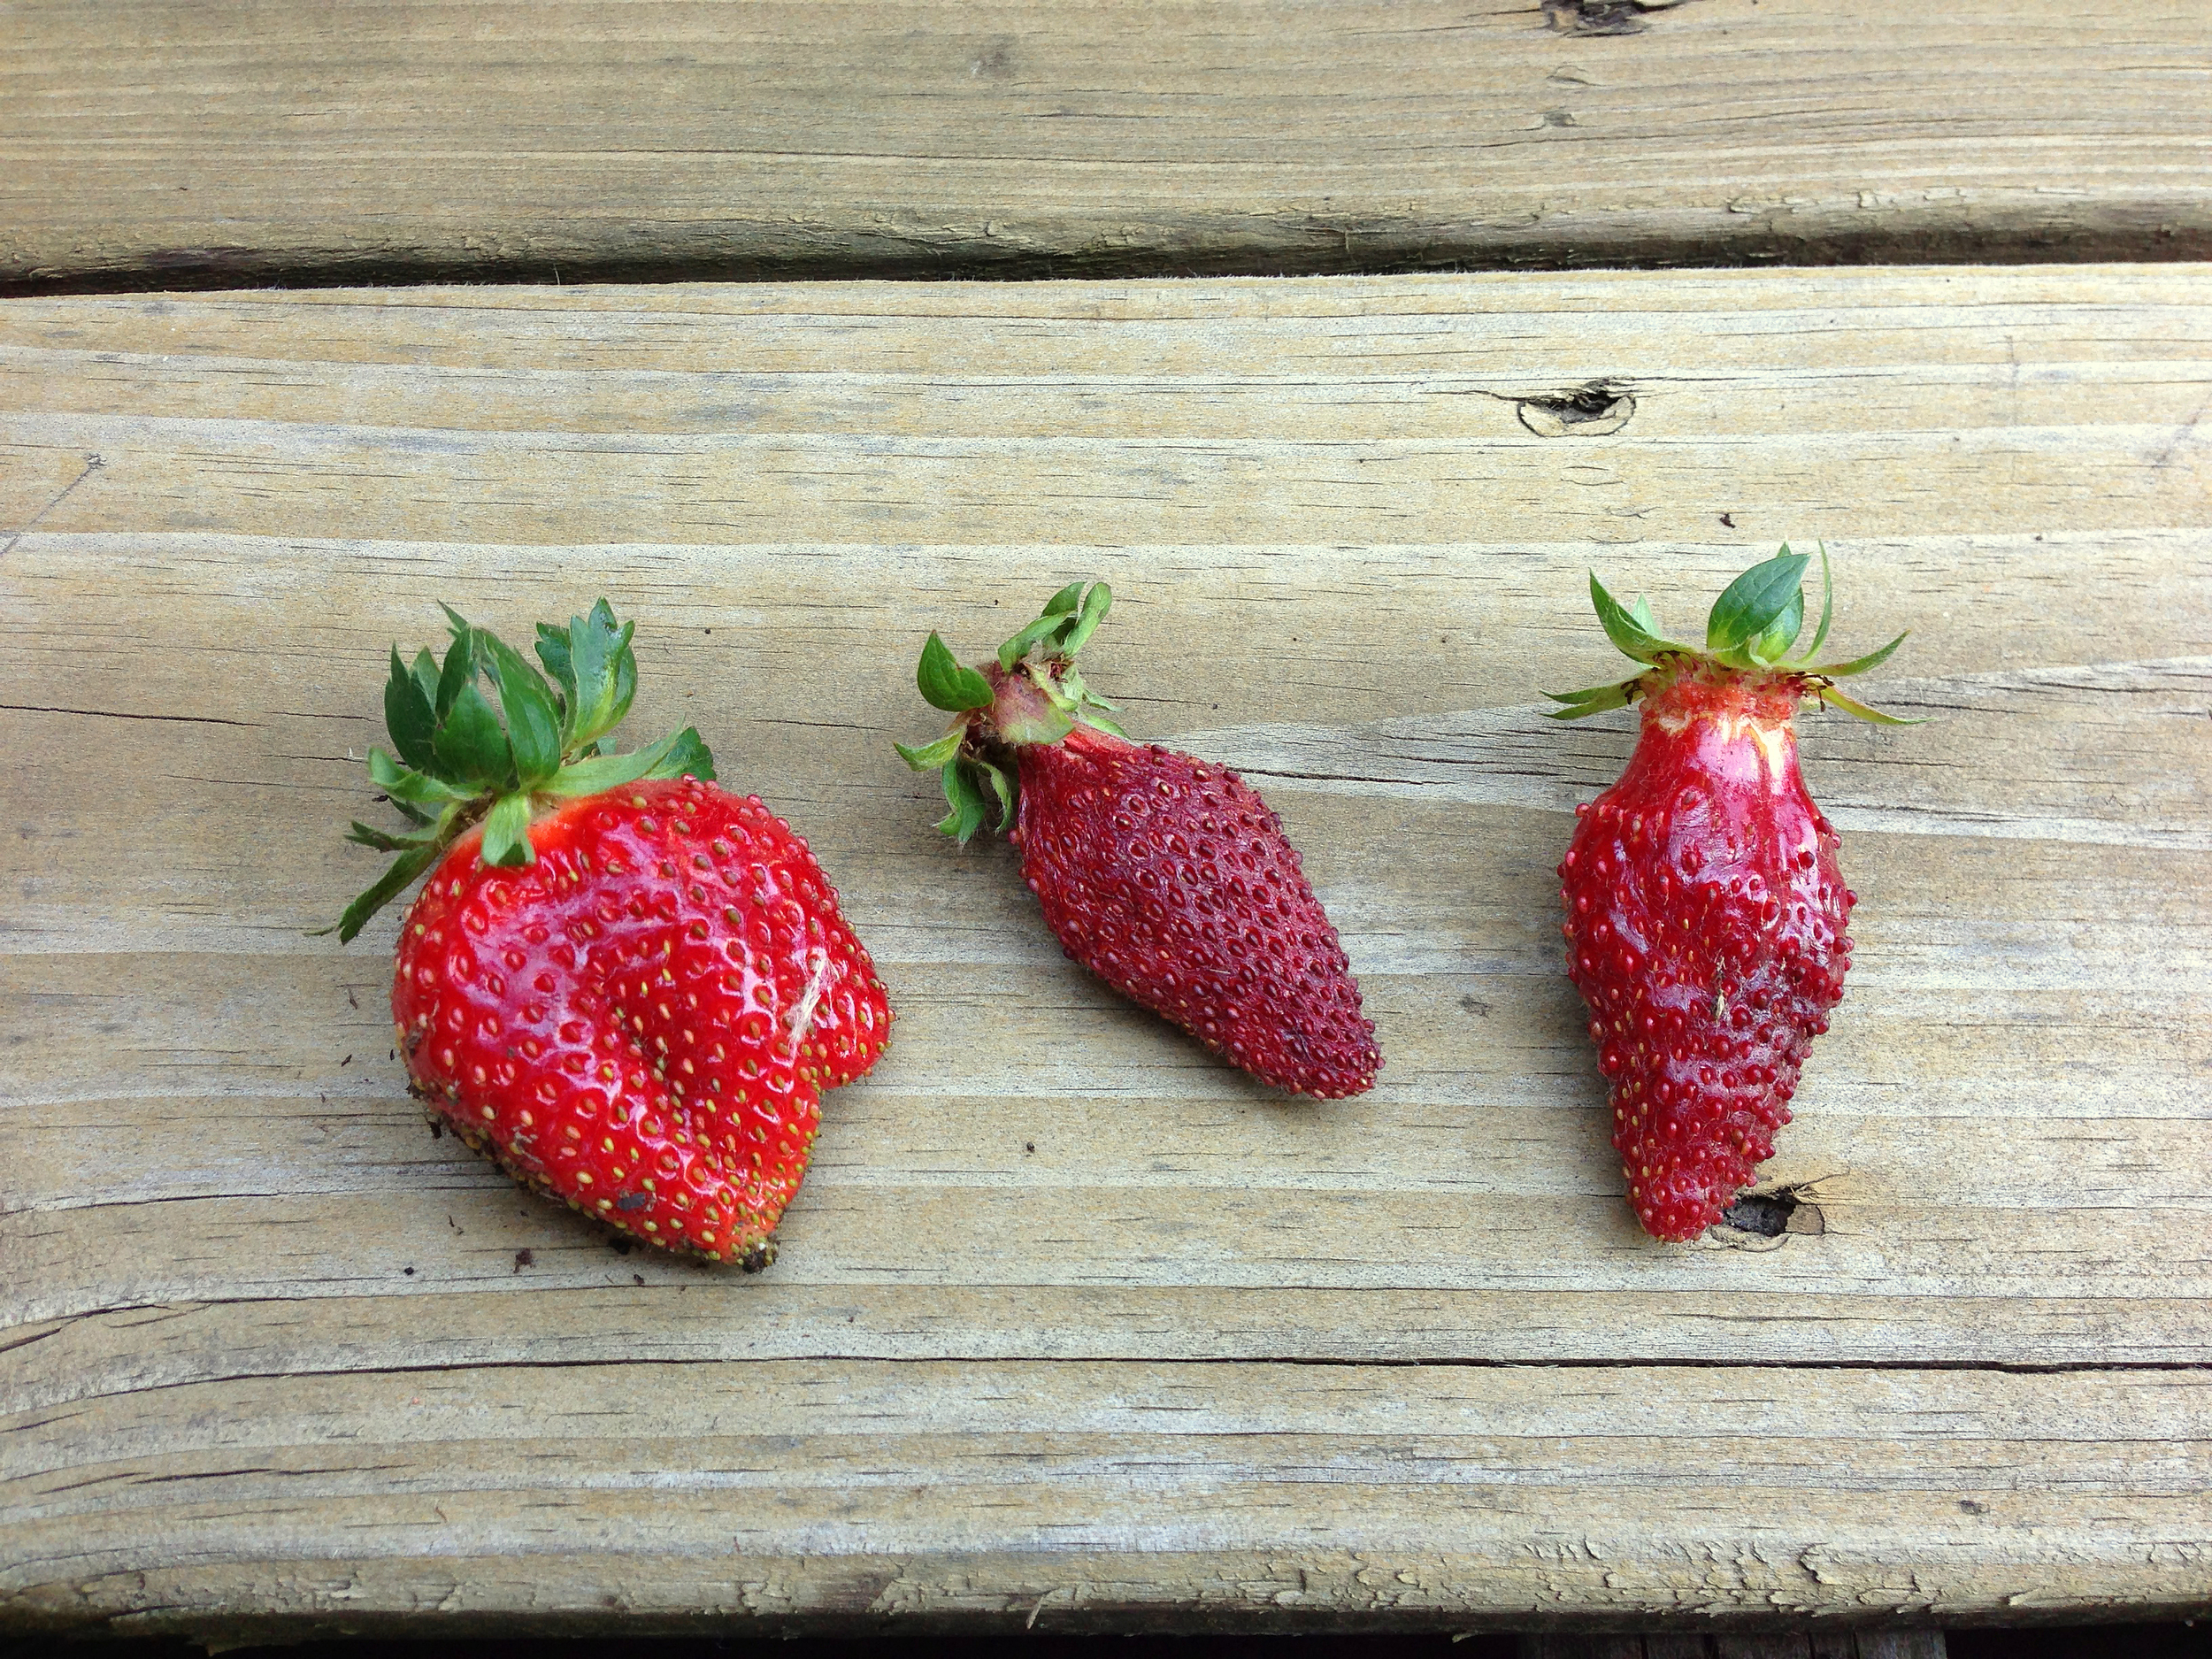 strawberry-harvest.jpg